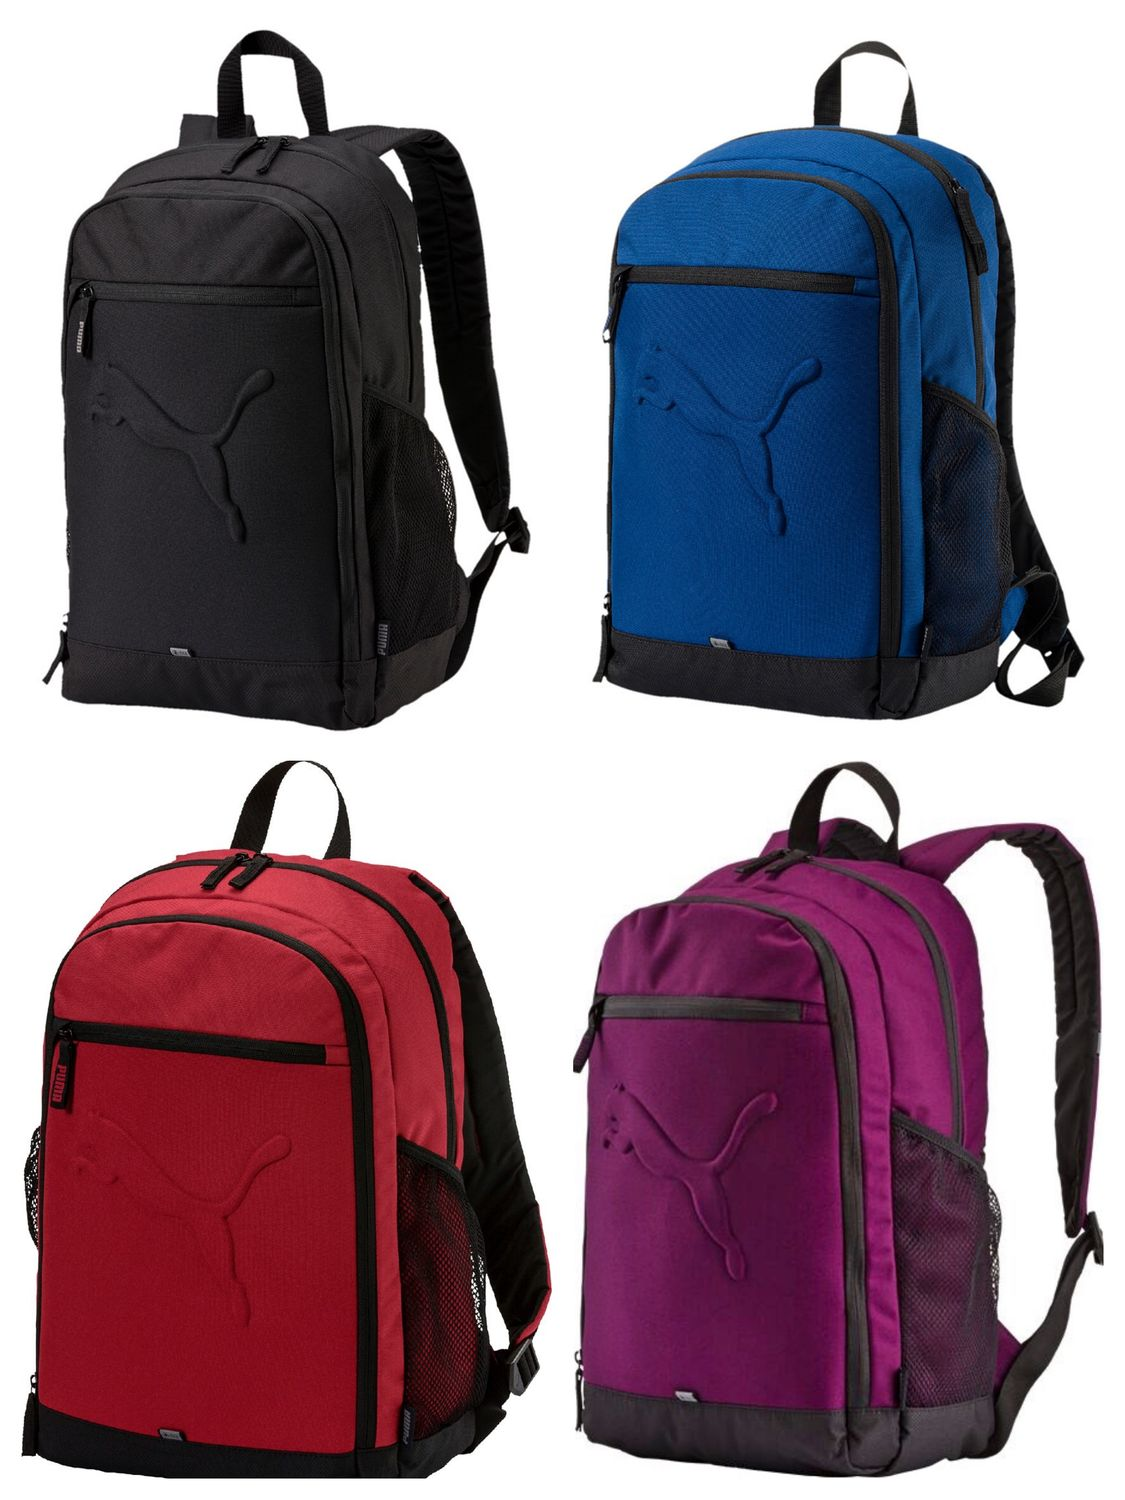 7220bf28f8e9 Details about Puma Buzz Backpack Backpack 073581